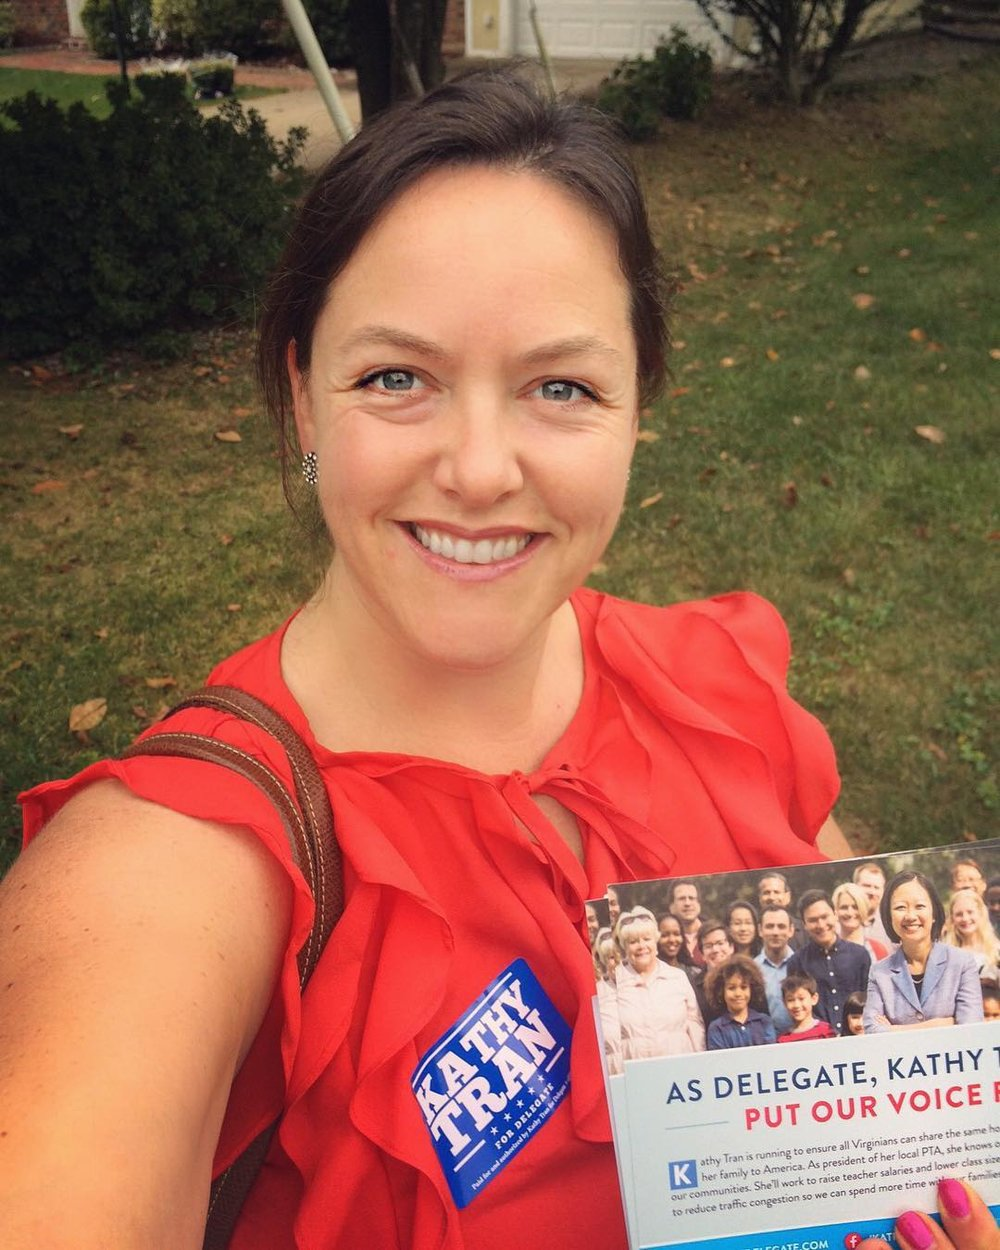 Sister District Berkeley volunteer Keavney canvassing in Virginia for Kathy. And on the right, volunteers share what it's like to phonebank!